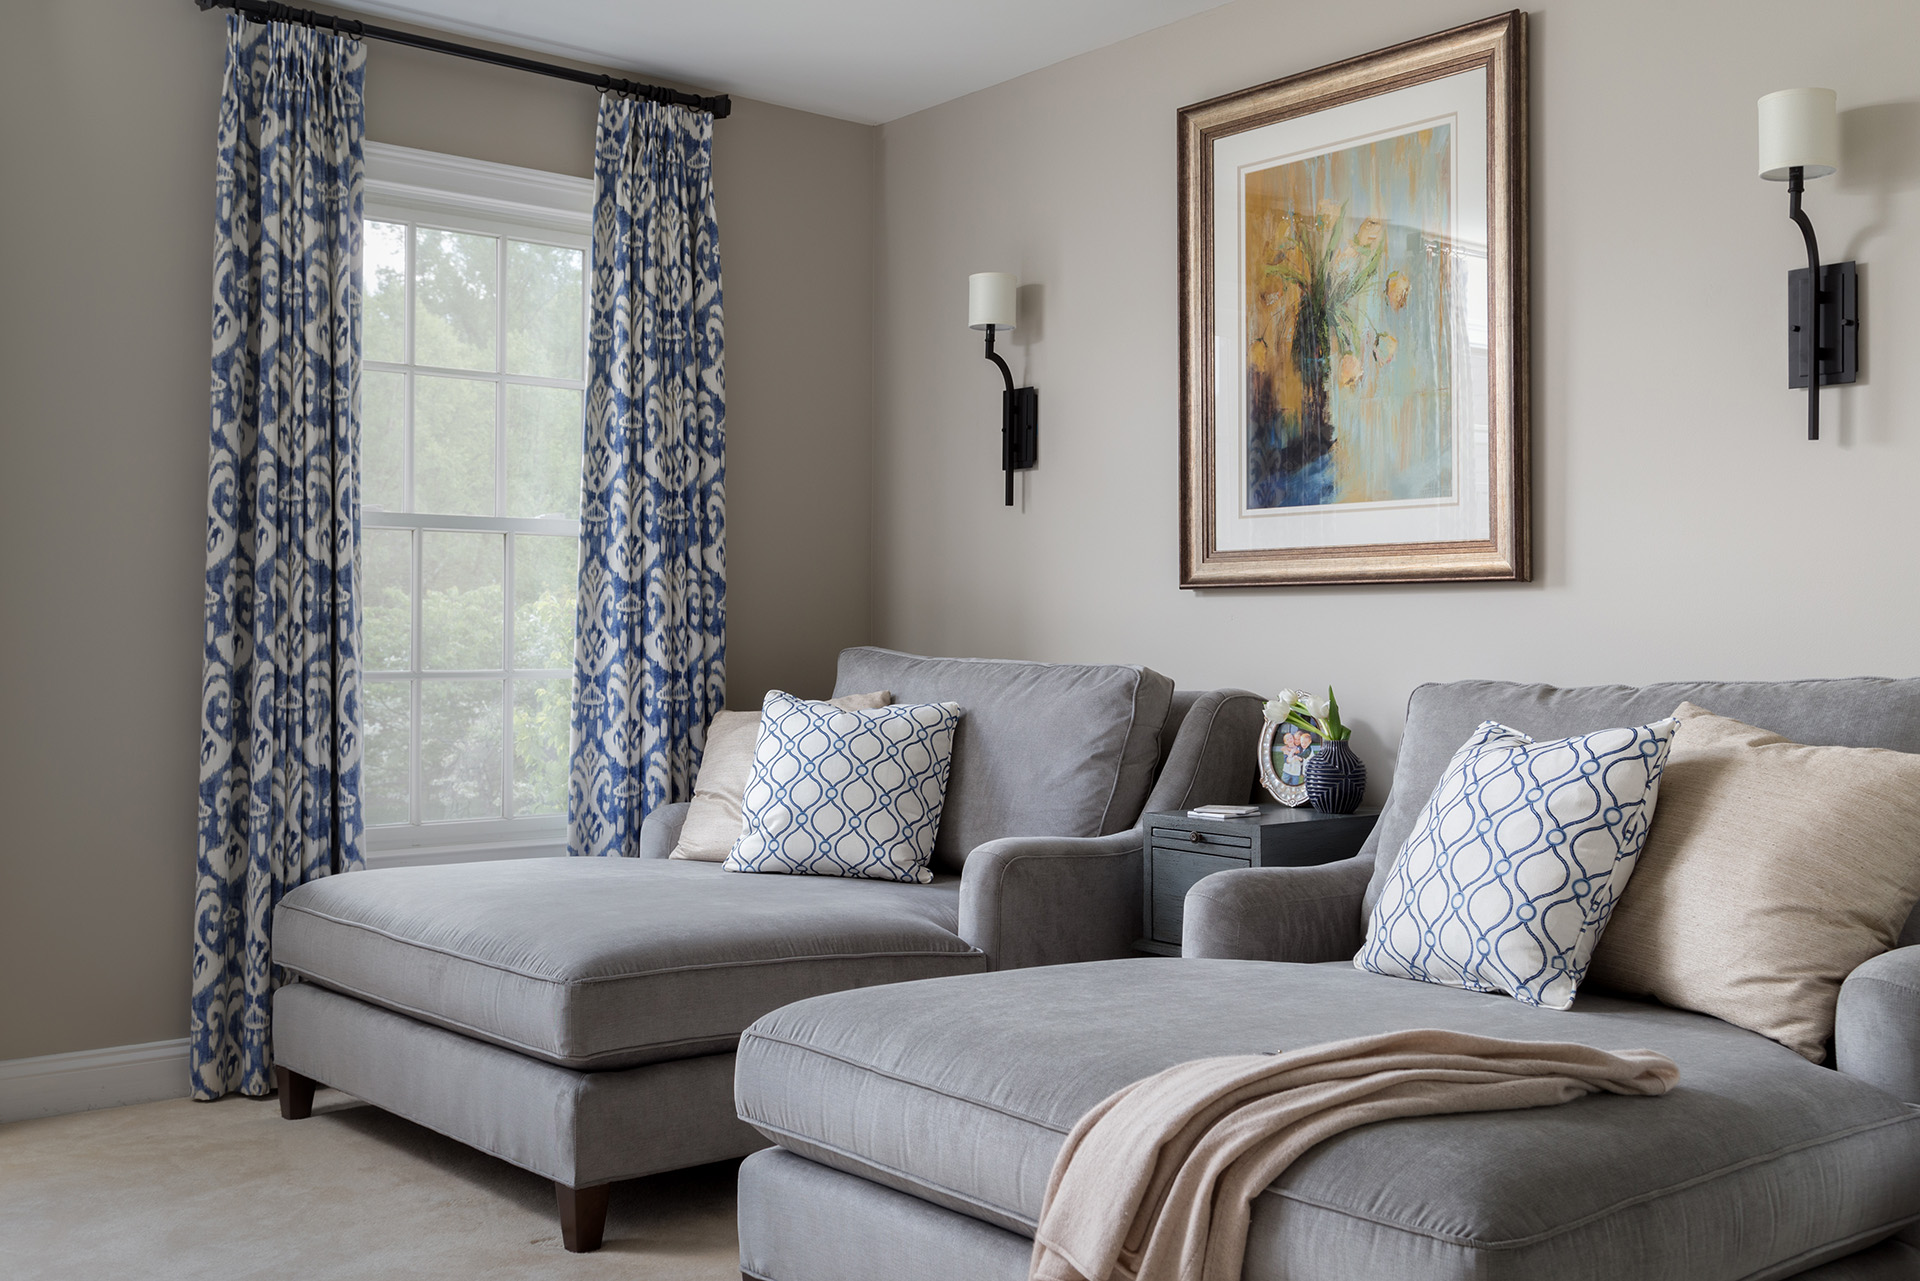 Changing Spaces - Decorating Den Interiors - Annapolis, MD 21403 - (443)699-0538 | ShowMeLocal.com